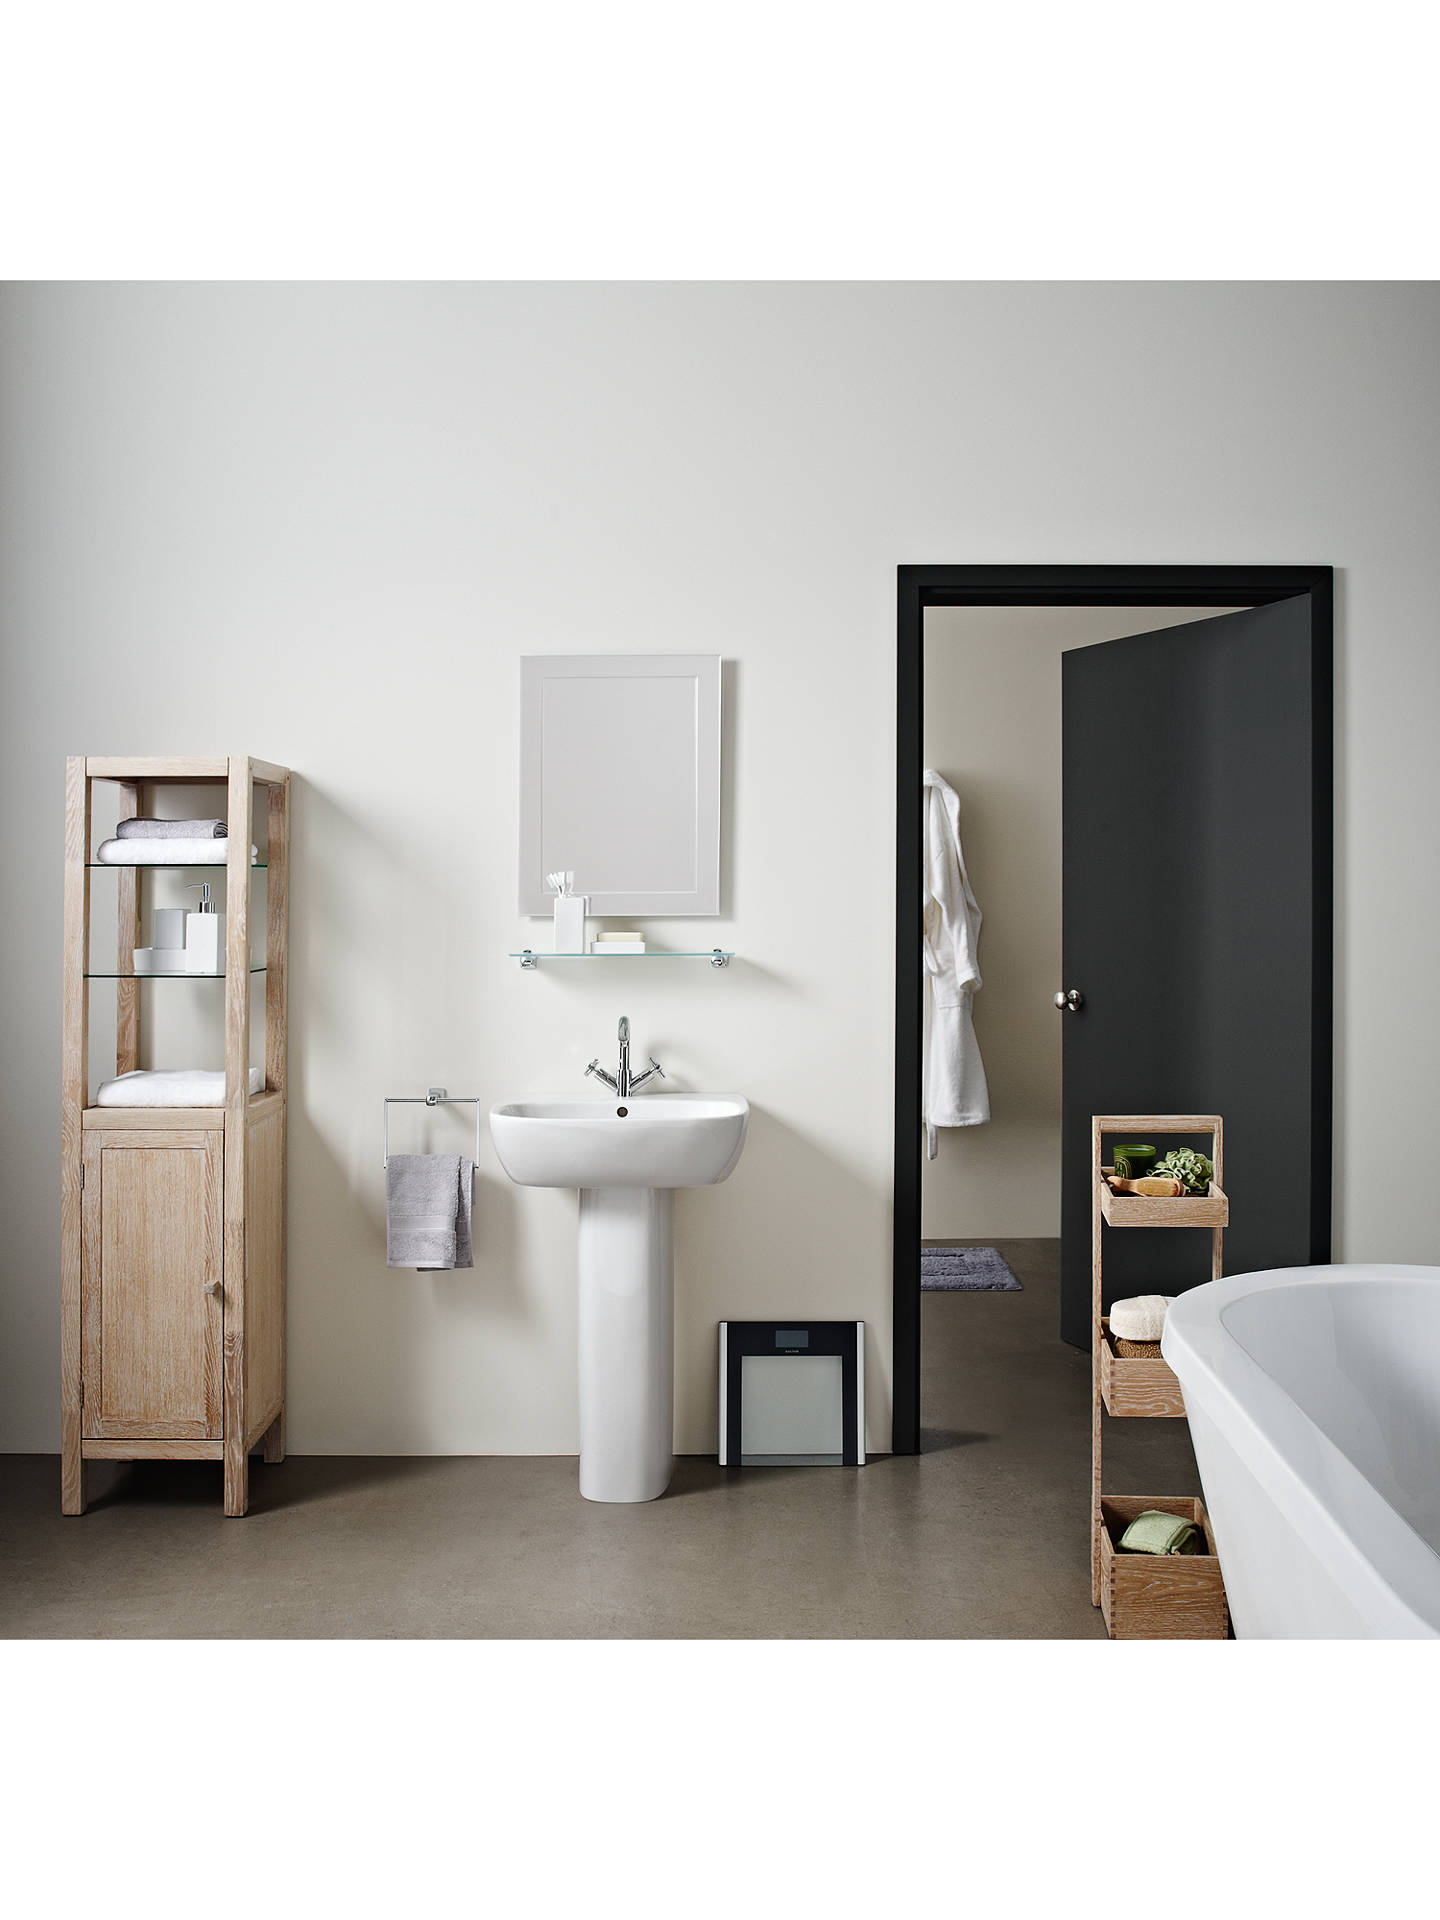 BuyJohn Lewis & Partners Duo Wall Bathroom Mirror, 60 x 45cm Online at johnlewis.com